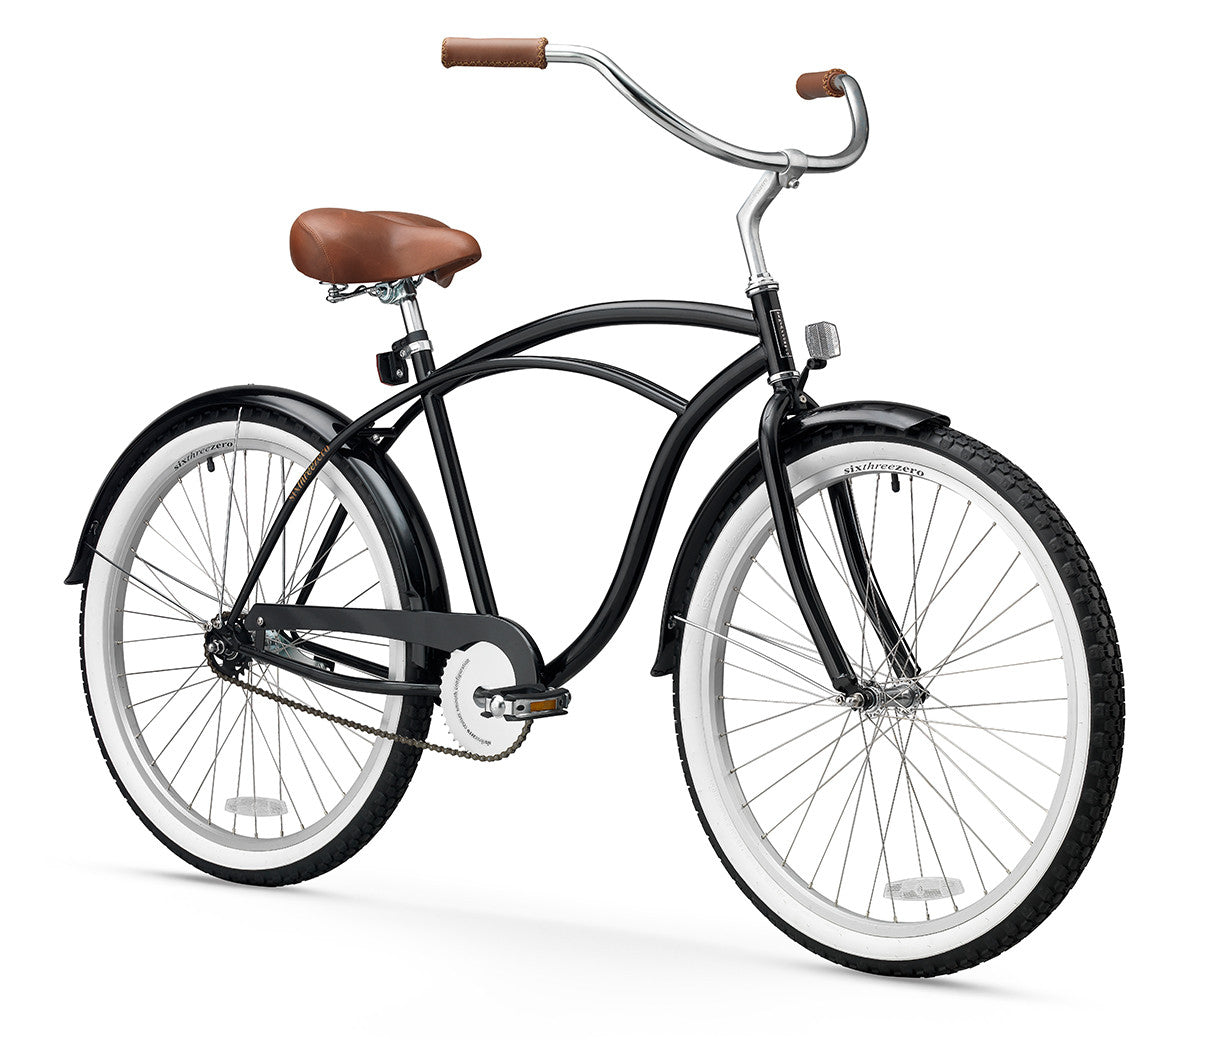 sixthreezero BE Men's Single Speed Beach Cruiser Bicycle